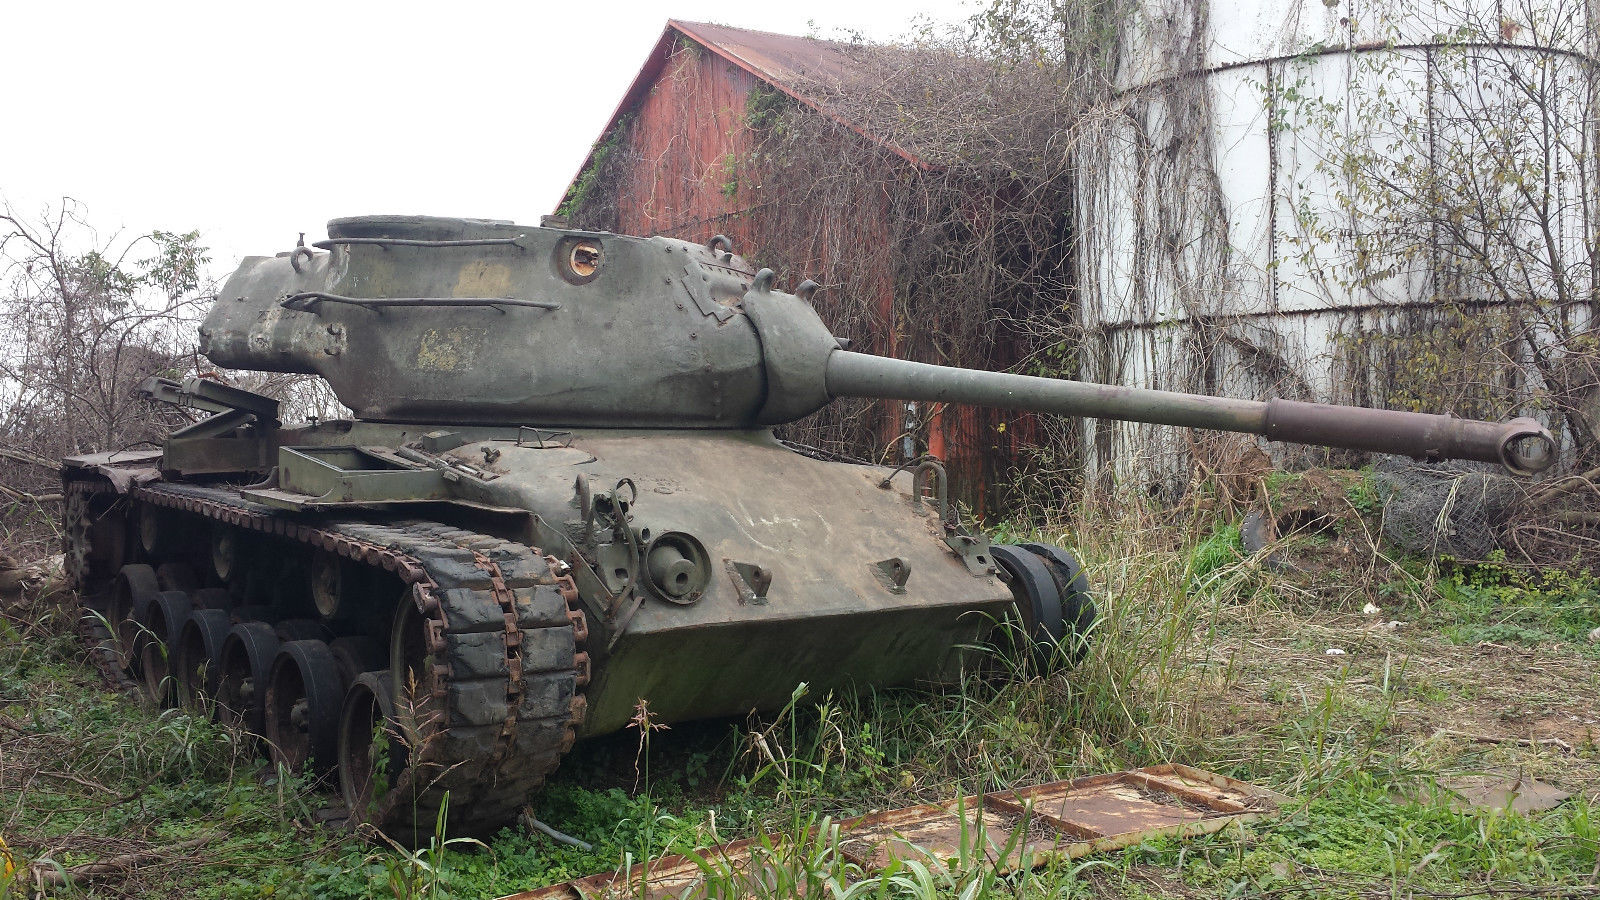 Armored Vehicles For Sale >> Photo of the Day: M47 for sale – Tank and AFV News